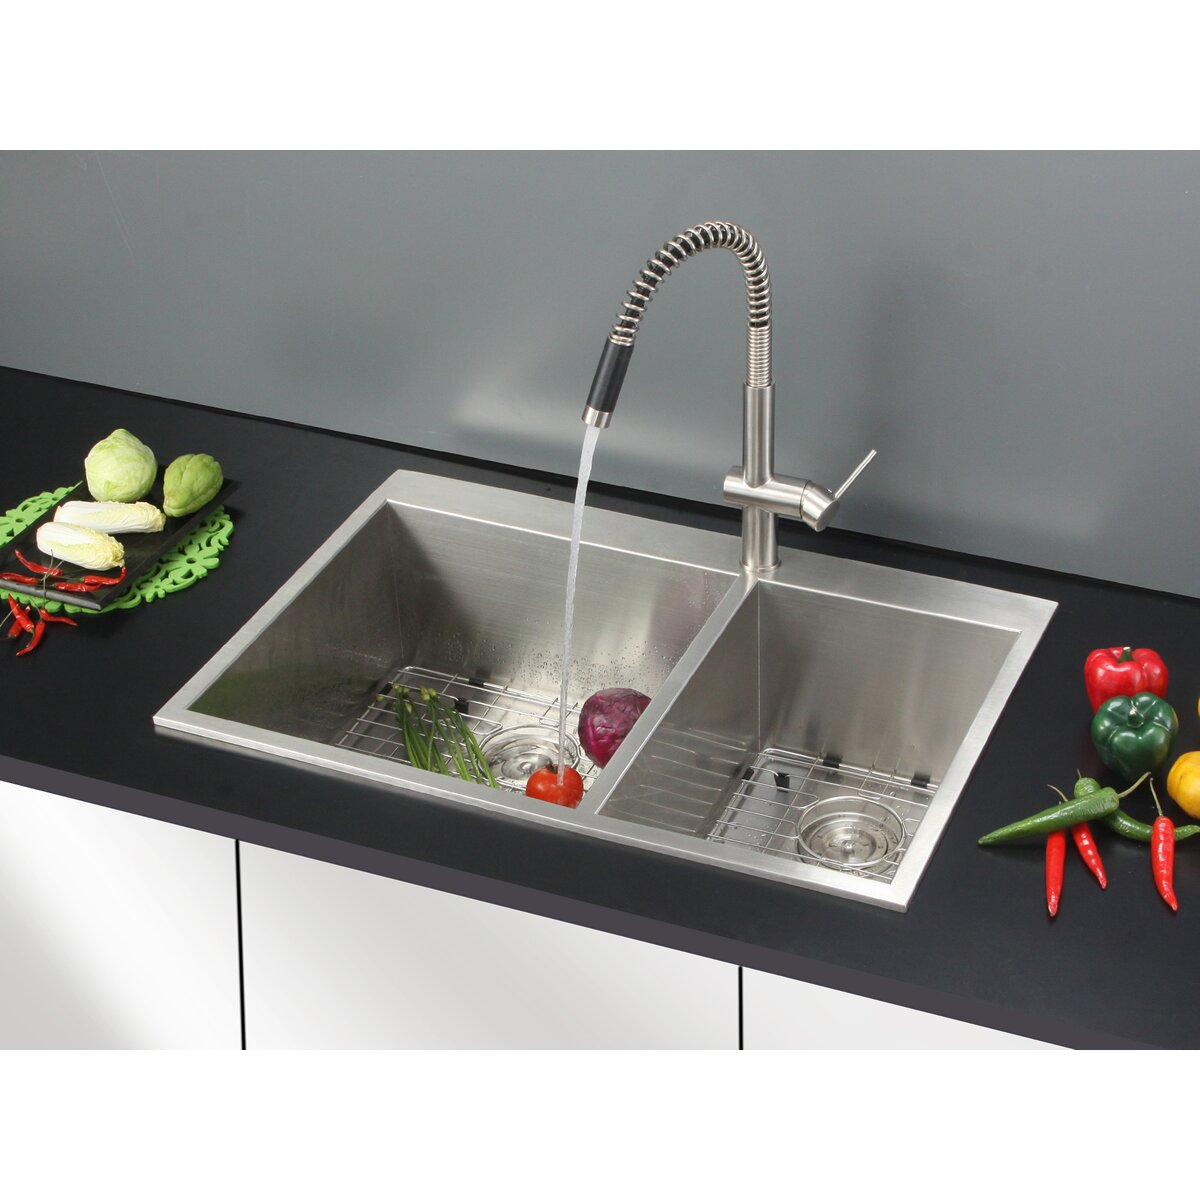 "Ruvati Tirana 33"" X 22"" Drop-in Double Bowl Kitchen Sink"